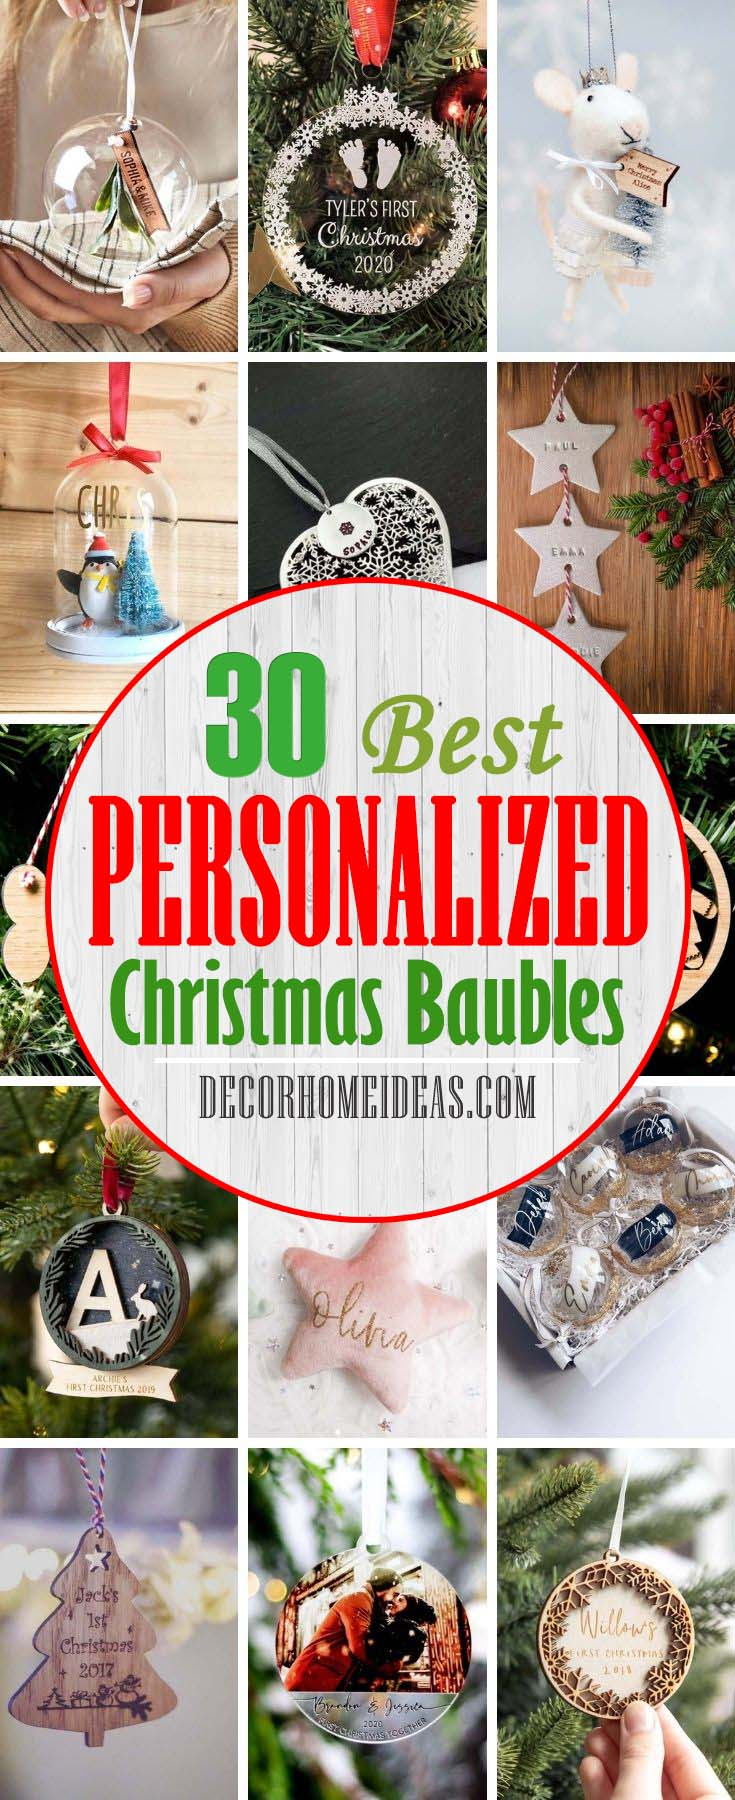 Best Personalised Christmas Baubles. Add a special touch this year with a decoration you'll treasure - you'll find personalised baubles, personalised baby's first Christmas decorations and new home baubles here. #decorhomeideas